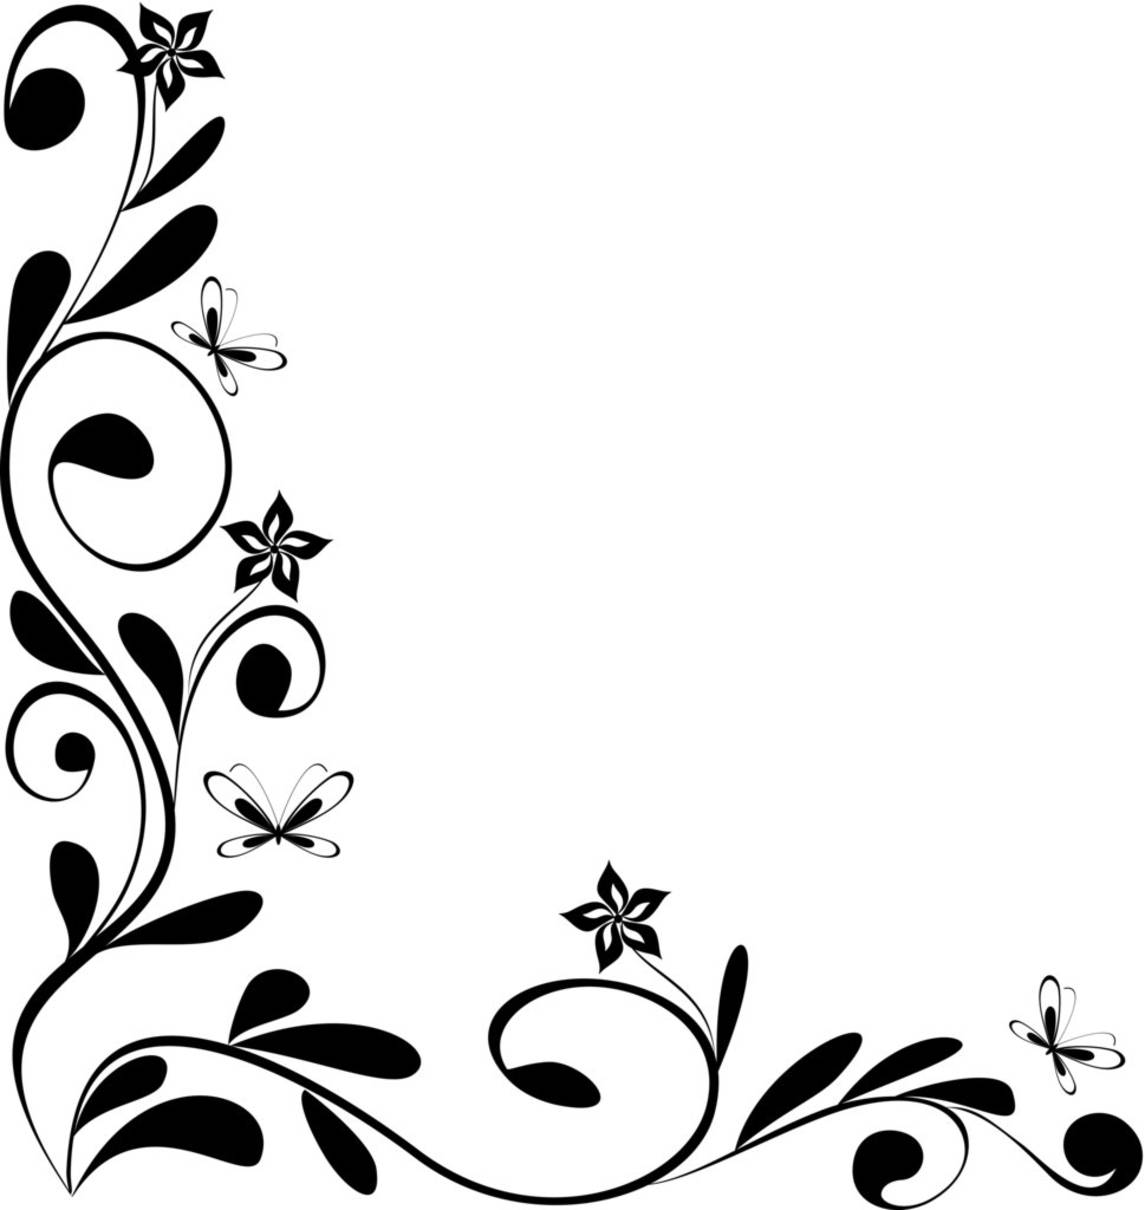 Simple Background Designs To Draw Clipart Best